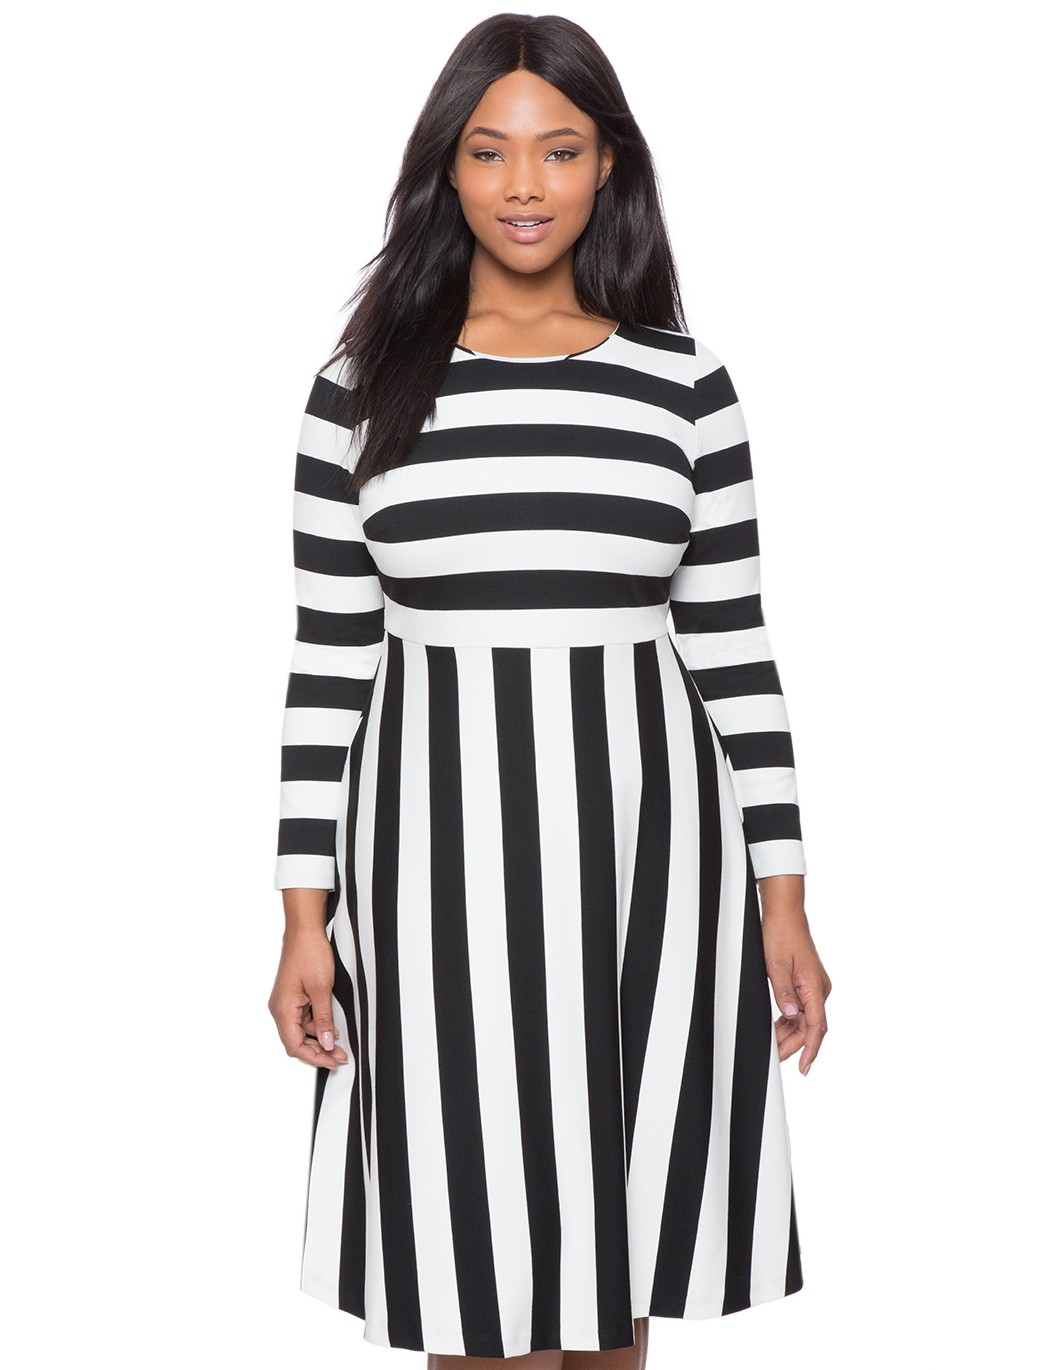 Opposing Stripes Fit and Flare Dress | Women\'s Plus Size Dresses ...